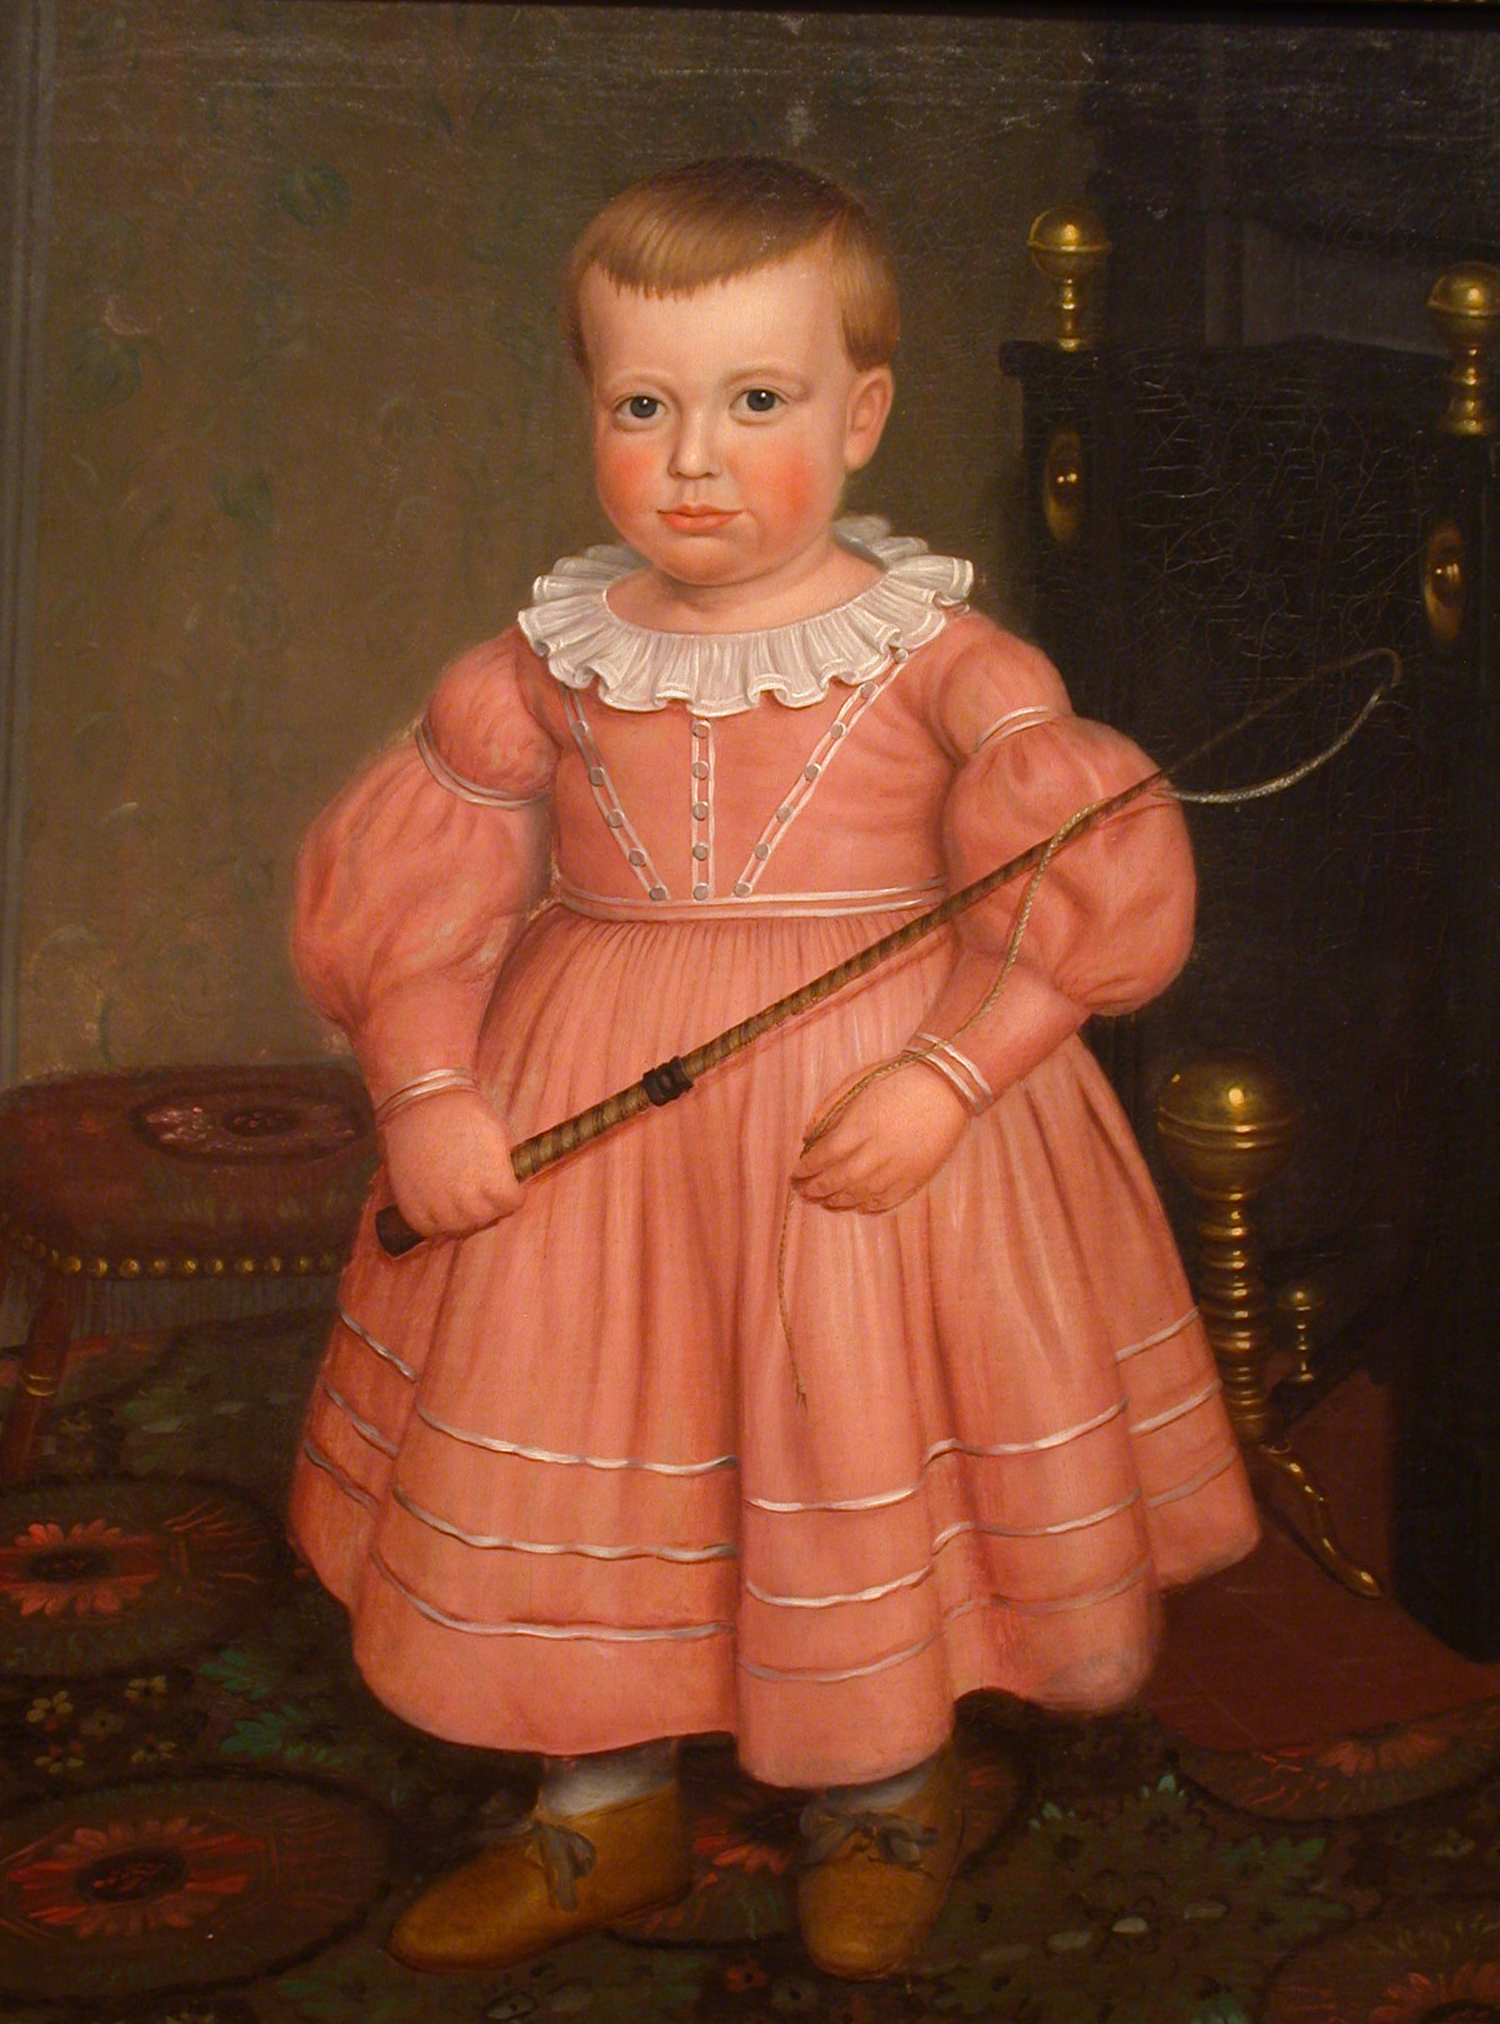 A seventeenth century portrait of a small boy, holding a whip. He is wearing a pink dress